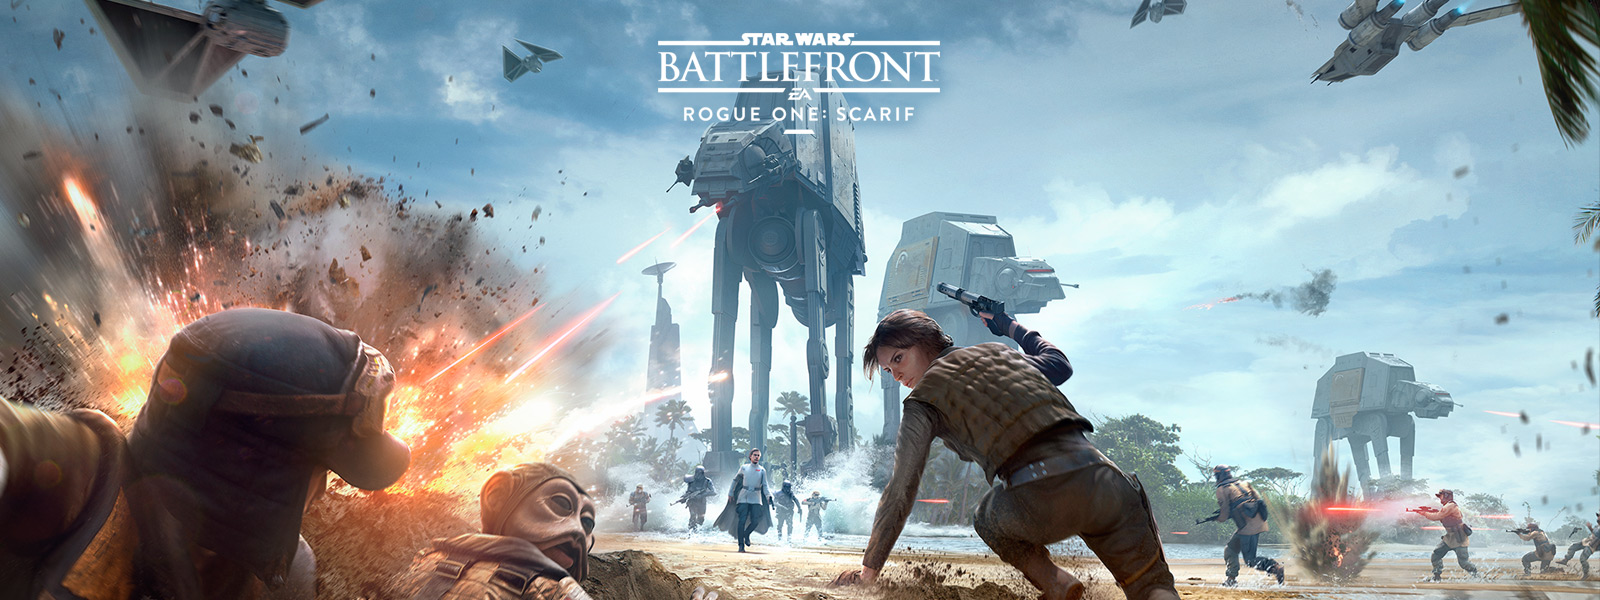 Star Wars Battlefront Rogue One